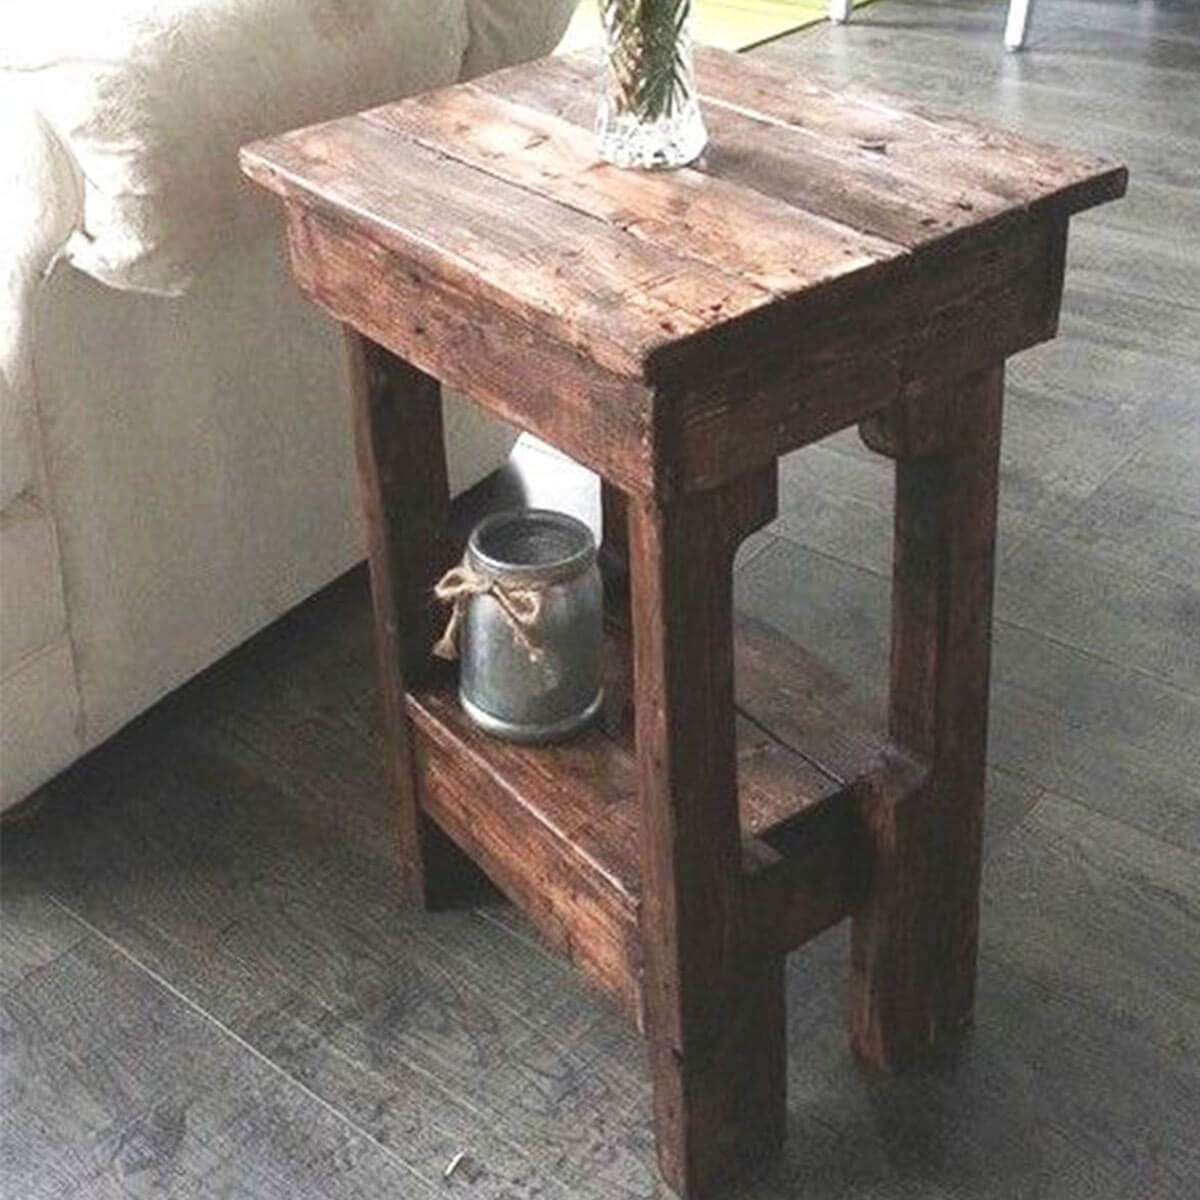 incredible diy end tables simple table ideas the family pallet rustic affordable cherry wood accent small dog pet cage modern breakfast contemporary office furniture ethan allen